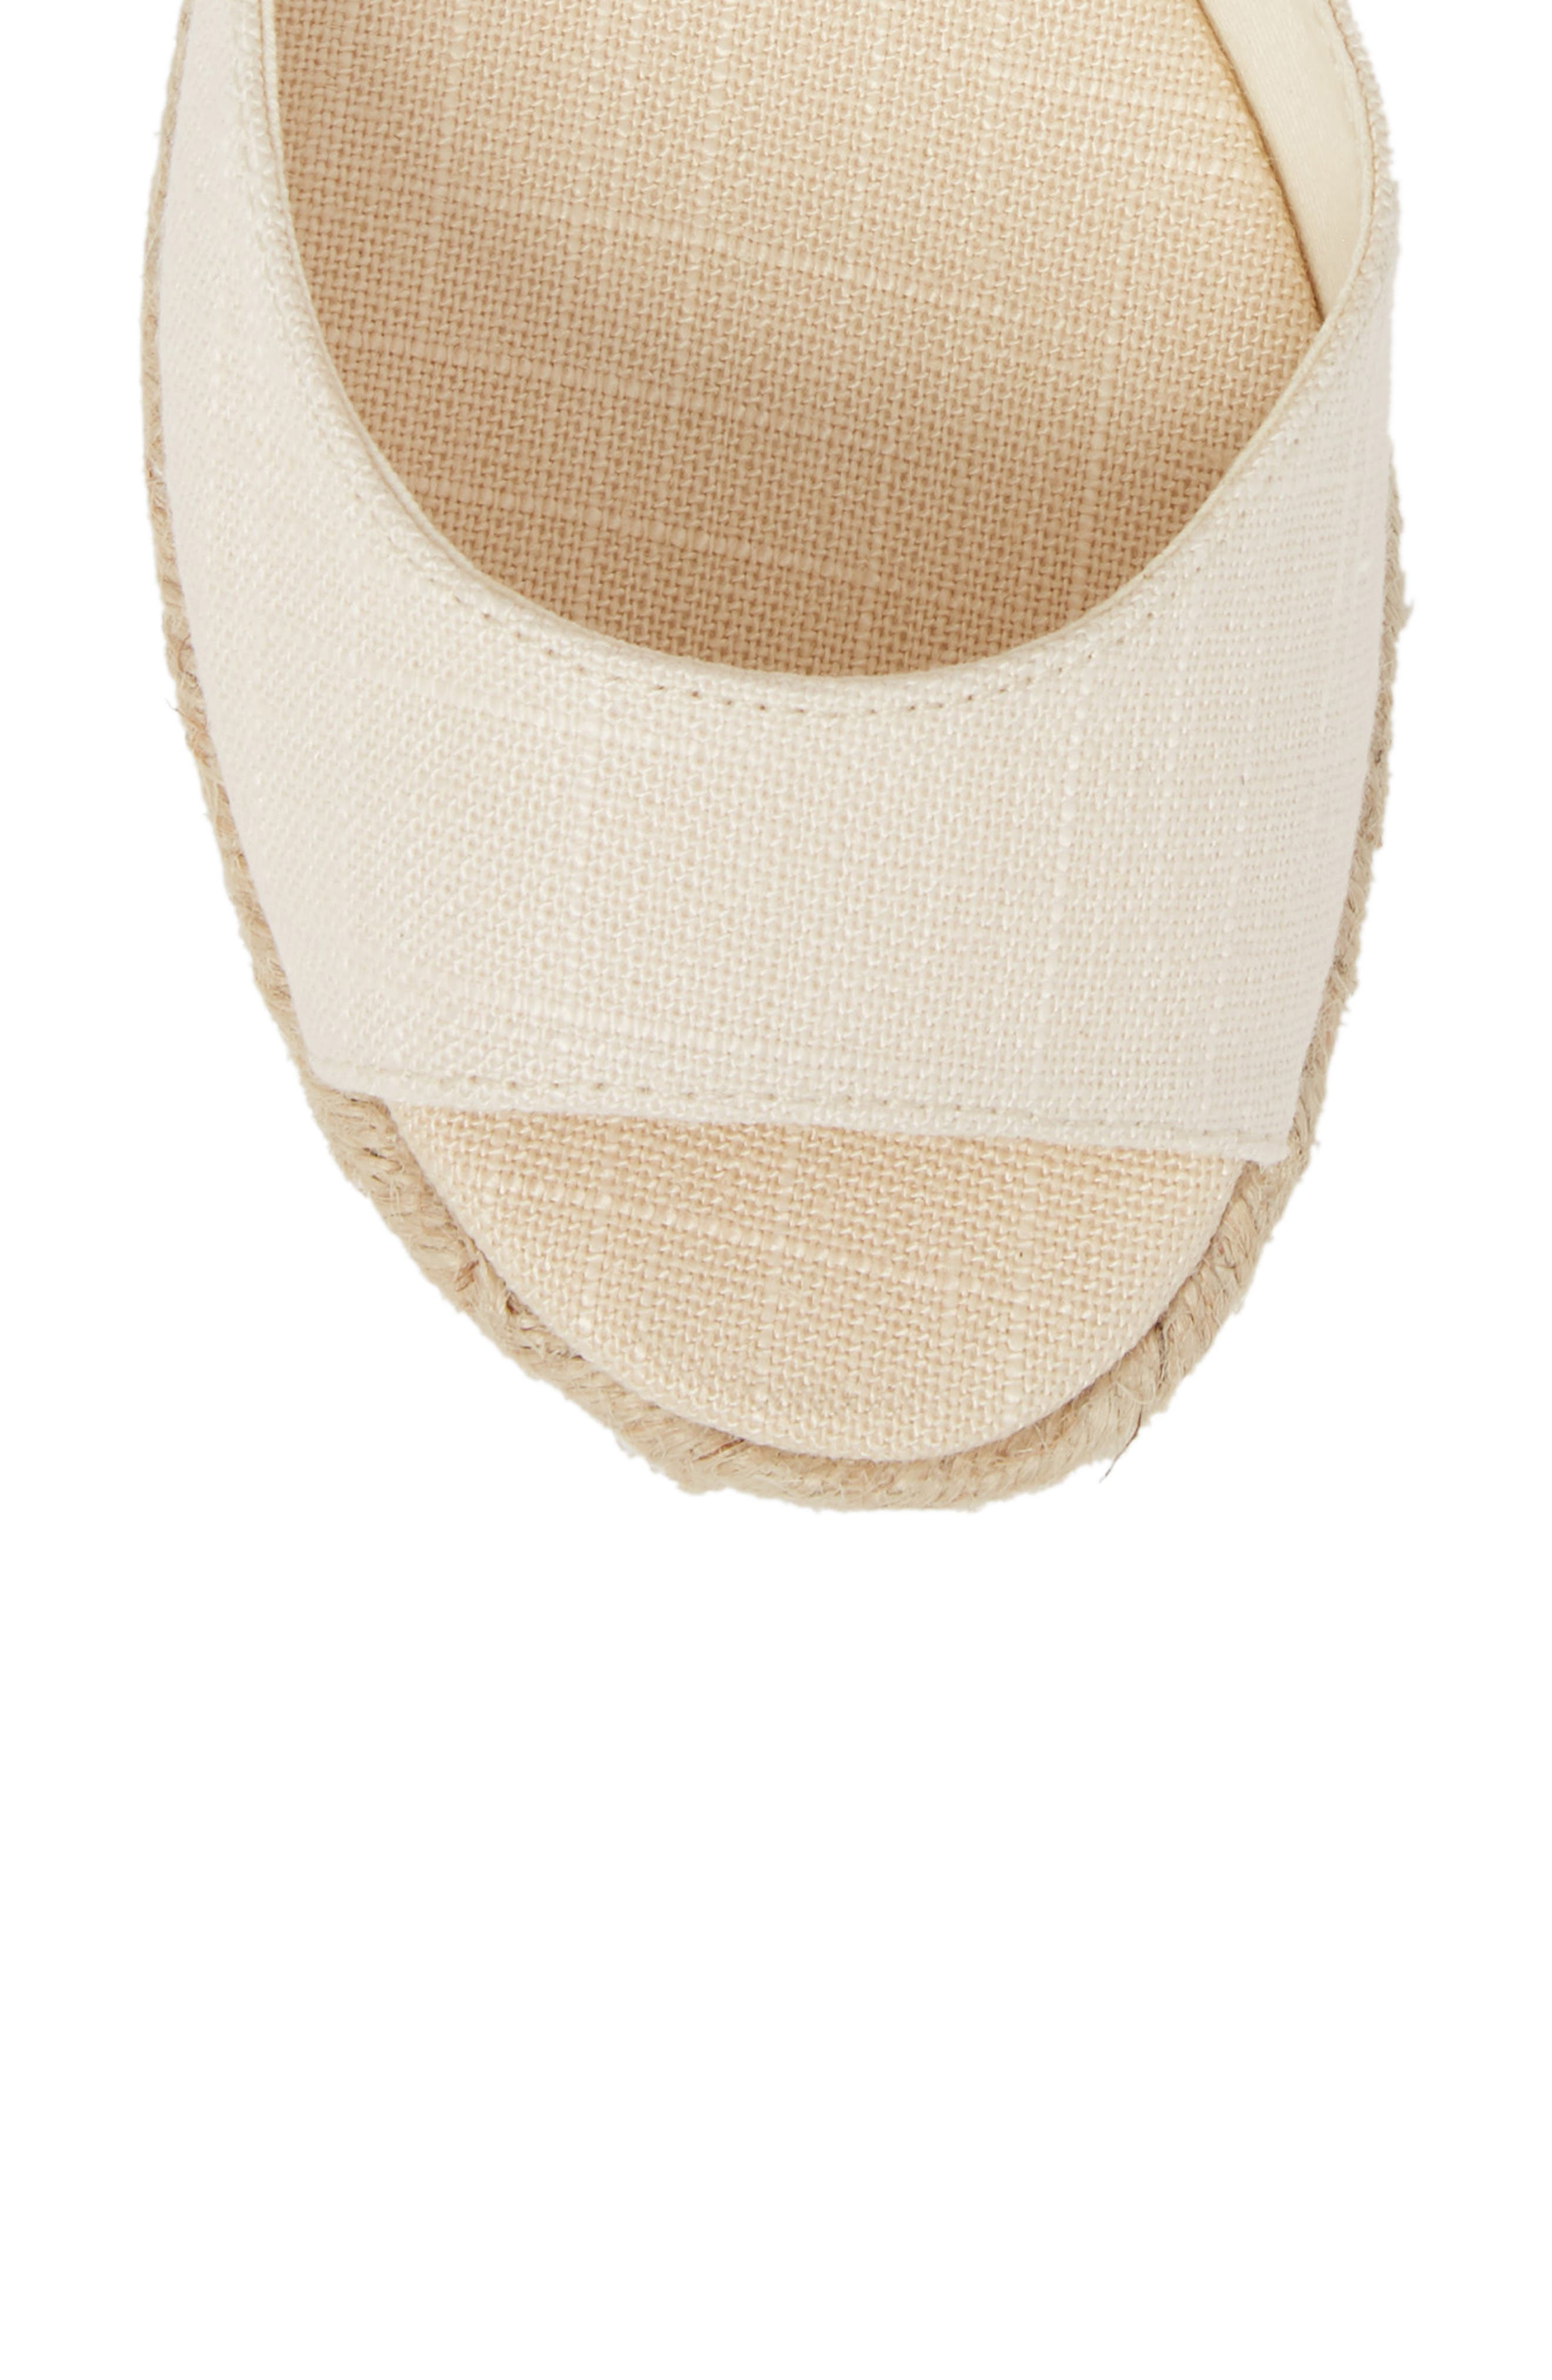 Espadrille Platform Sandal,                             Alternate thumbnail 5, color,                             BLUSH FABRIC